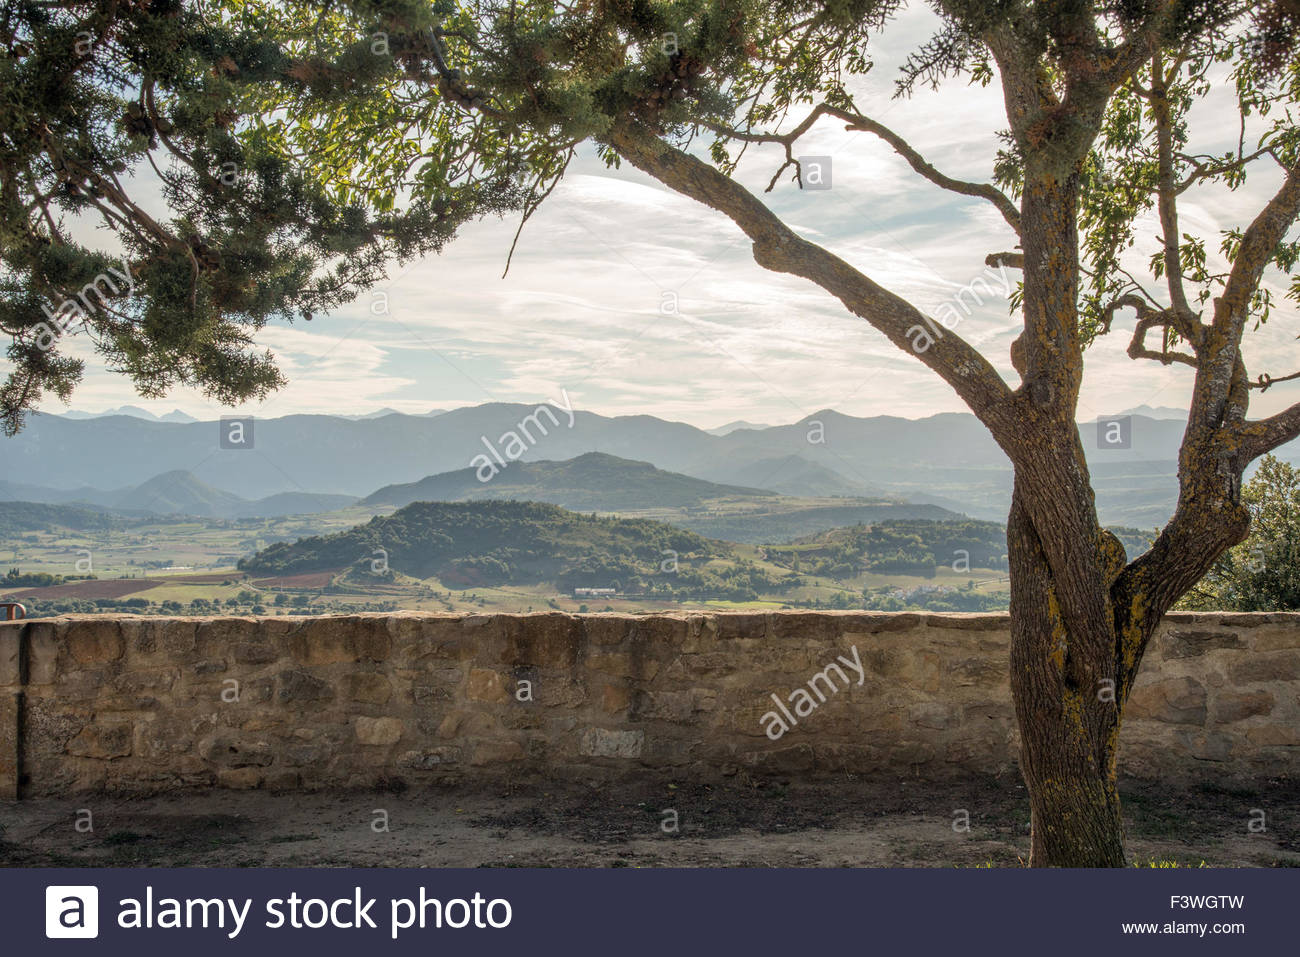 Rennes Le Chateau: view towards the Pyrenees from the village Stock Photo